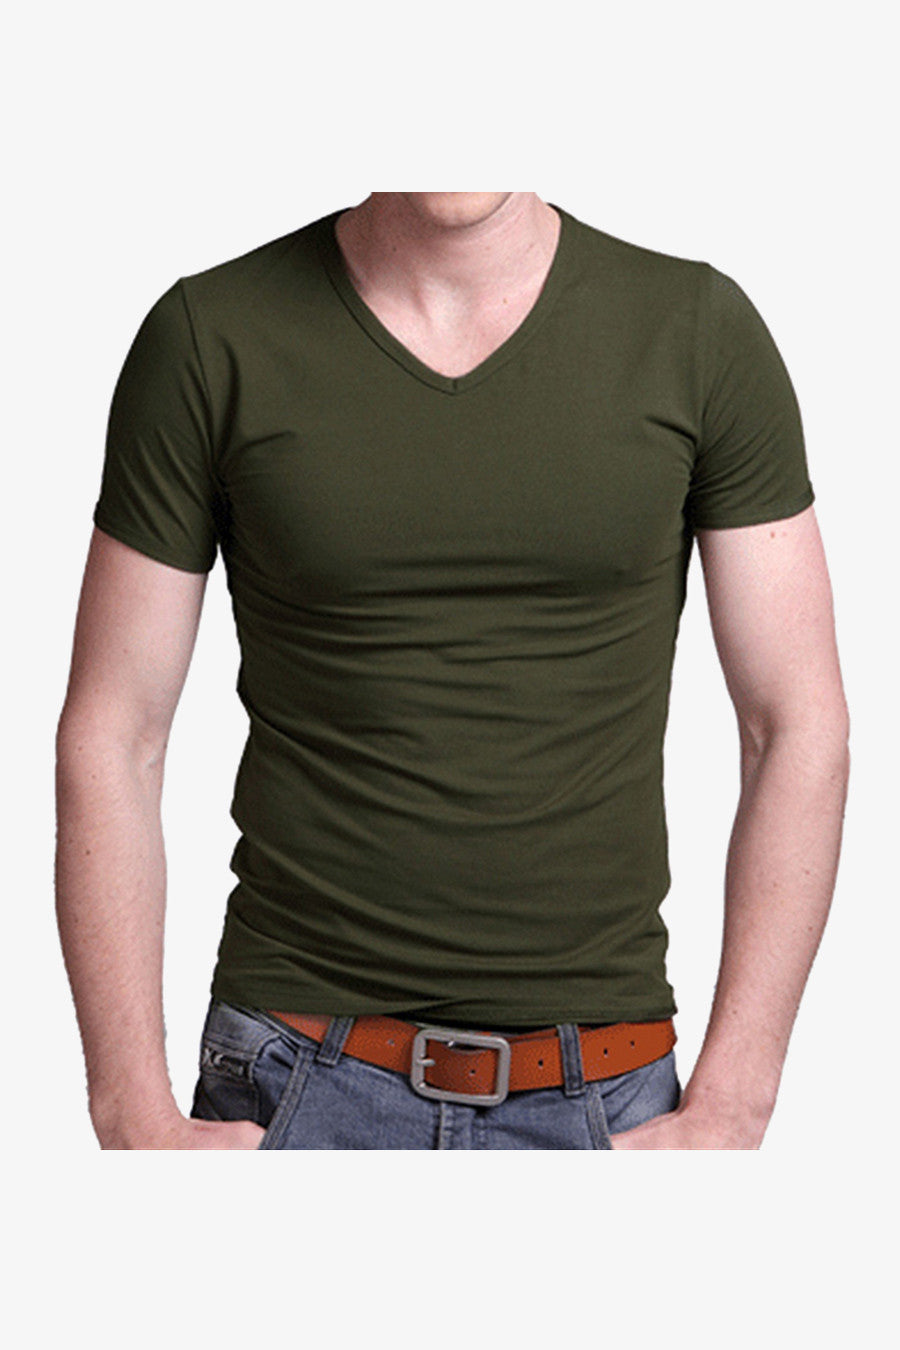 8c2f876ef Slim Fit V-Neck Army T-shirt. Tap to expand